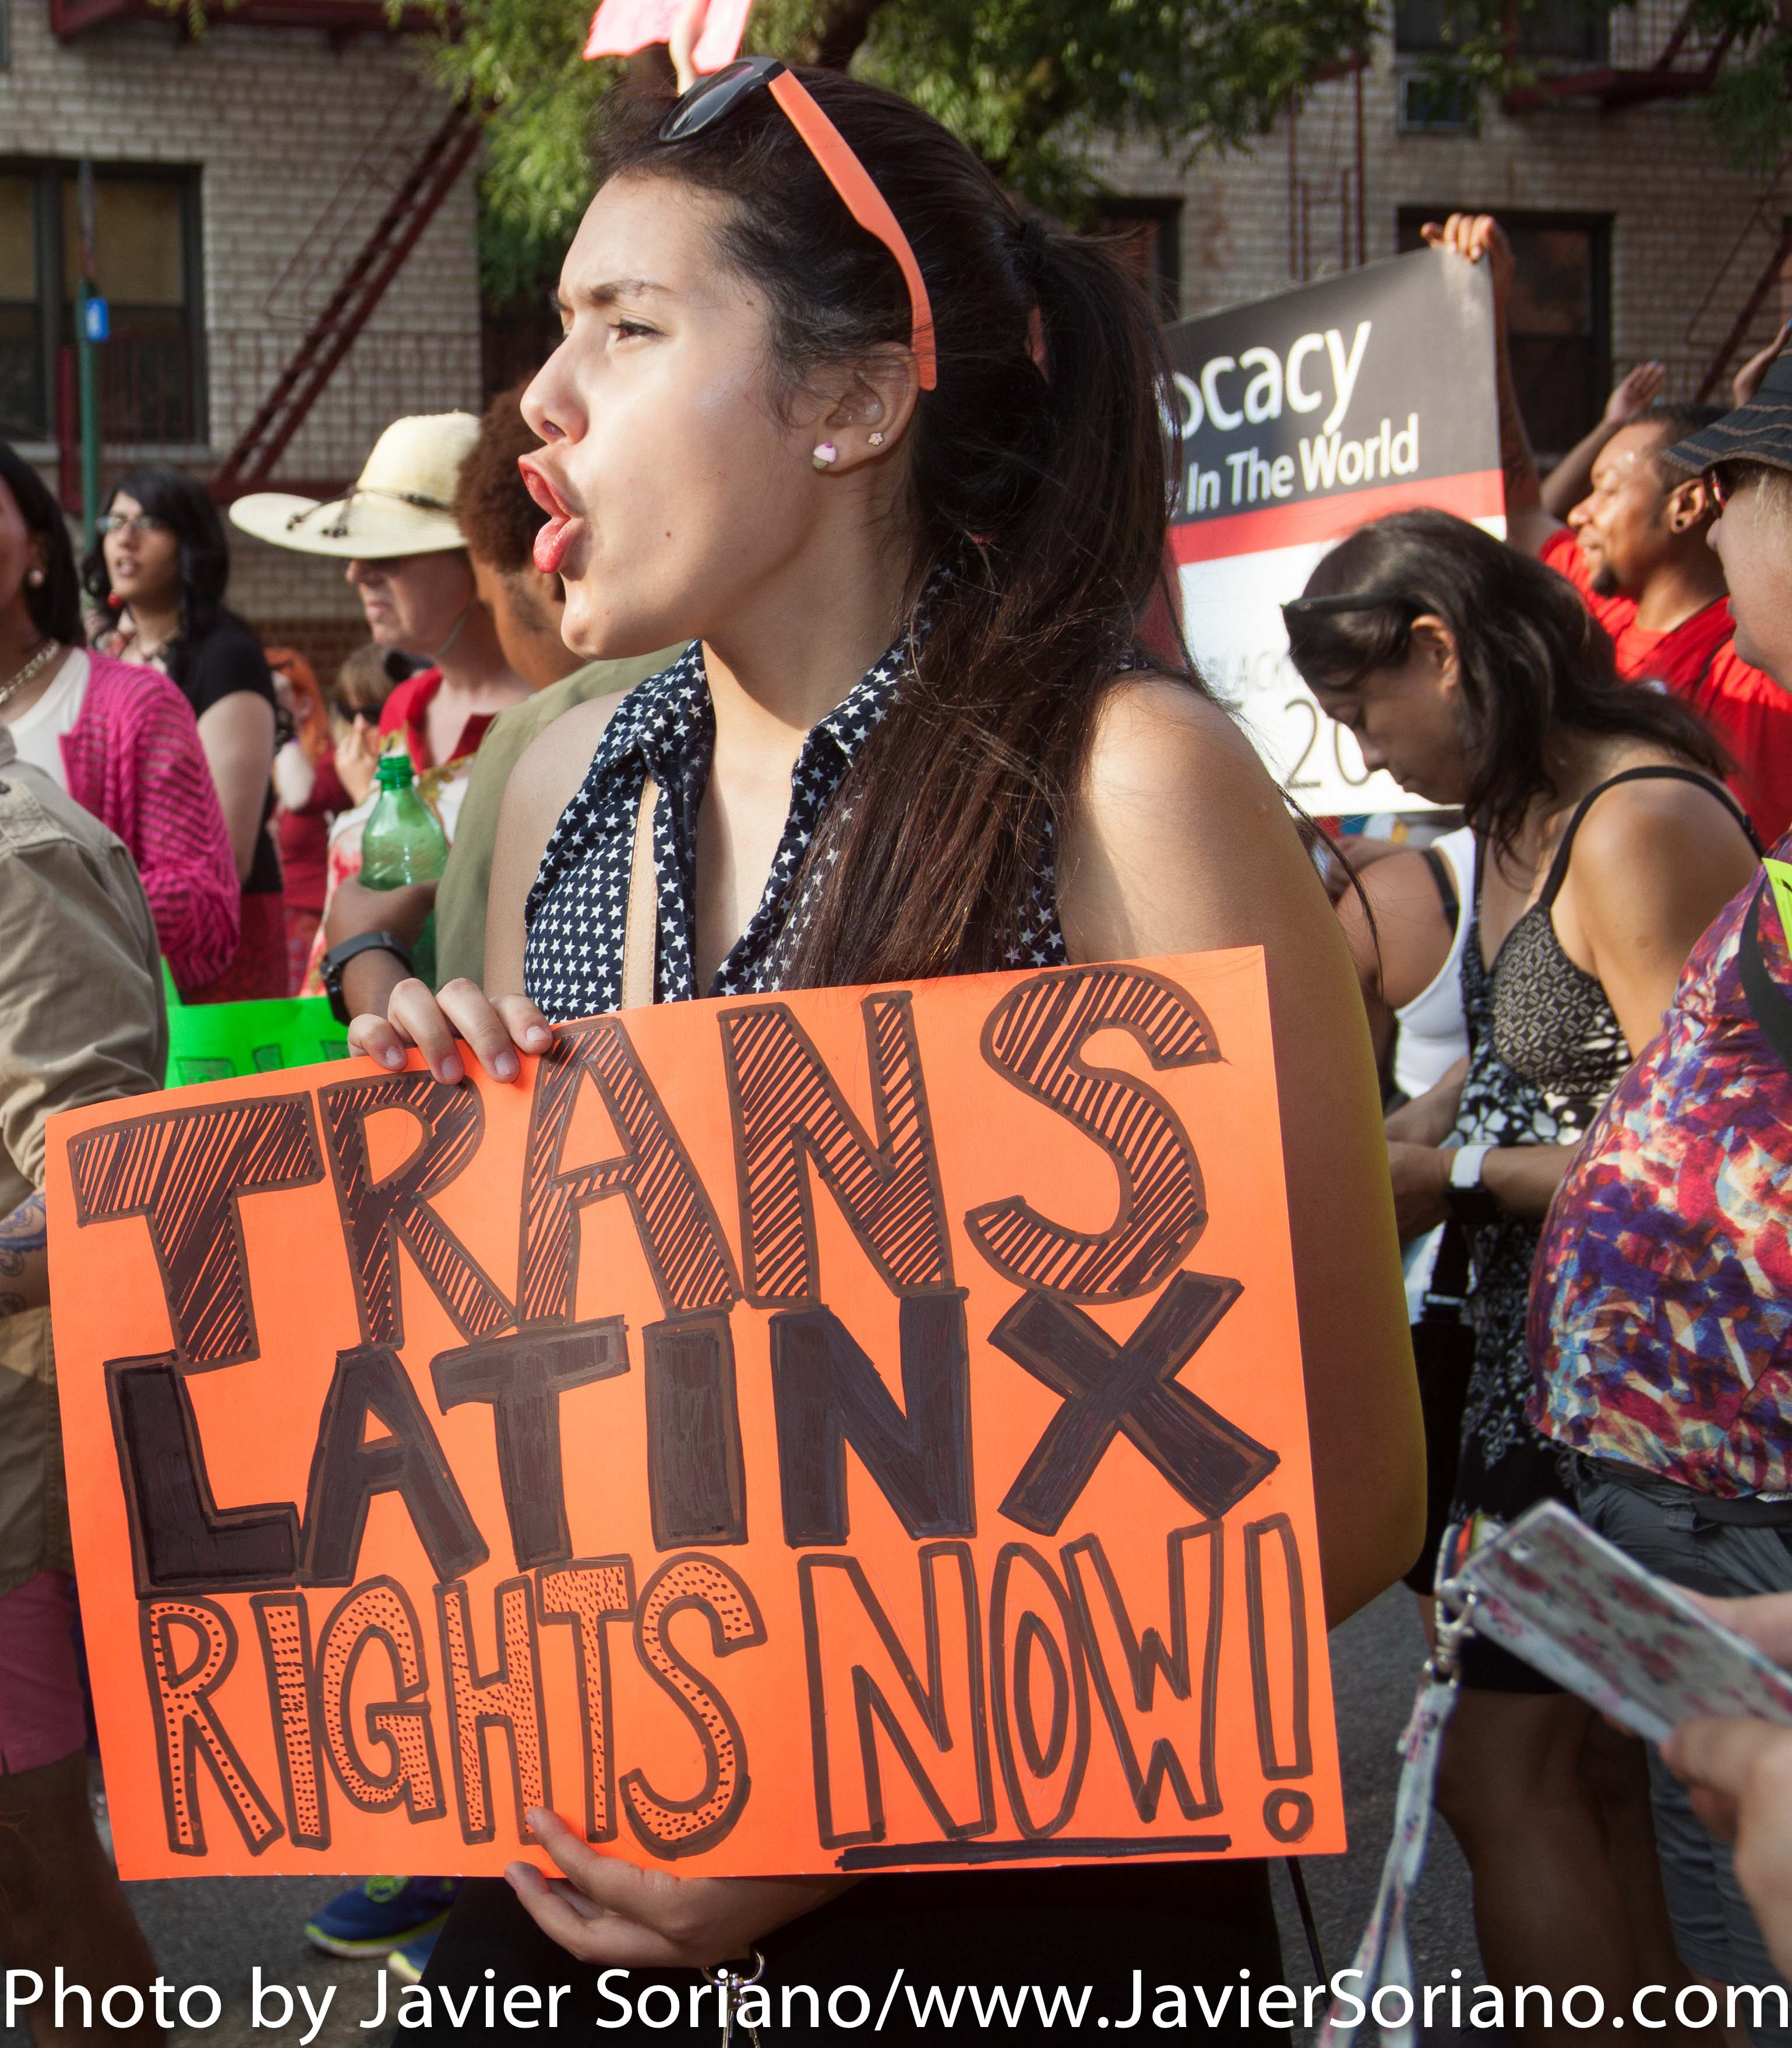 """On Friday, June 26, 2015, was the 11th Annual Trans Day of Action. TransJustice of the Audre Lorde Project, created by and for Trans and Gender Non-Conforming People of Color, gathered Trans and Gender Non-Conforming organizations and allies to march and rally on the Christopher Street Pier/Pier 45 for the 11th Annual Trans Day of Action. """"Visibility is important, and we've won many victories in the past year, but we know we still have a lot of work to do to end oppression and violence against Trans and Gender Non Conforming People of Color,"""" said Elliott Fukui, TransJustice Program Coordinator at the Audre Lorde Project. """"We need to continue organizing to find solutions to get our people safe housing, comprehensive healthcare, an end to police profiling, meaningful living wage employment, and safety in our streets from all forms of violence."""" Photo by Javier Soriano/http://www.JavierSoriano.com/"""